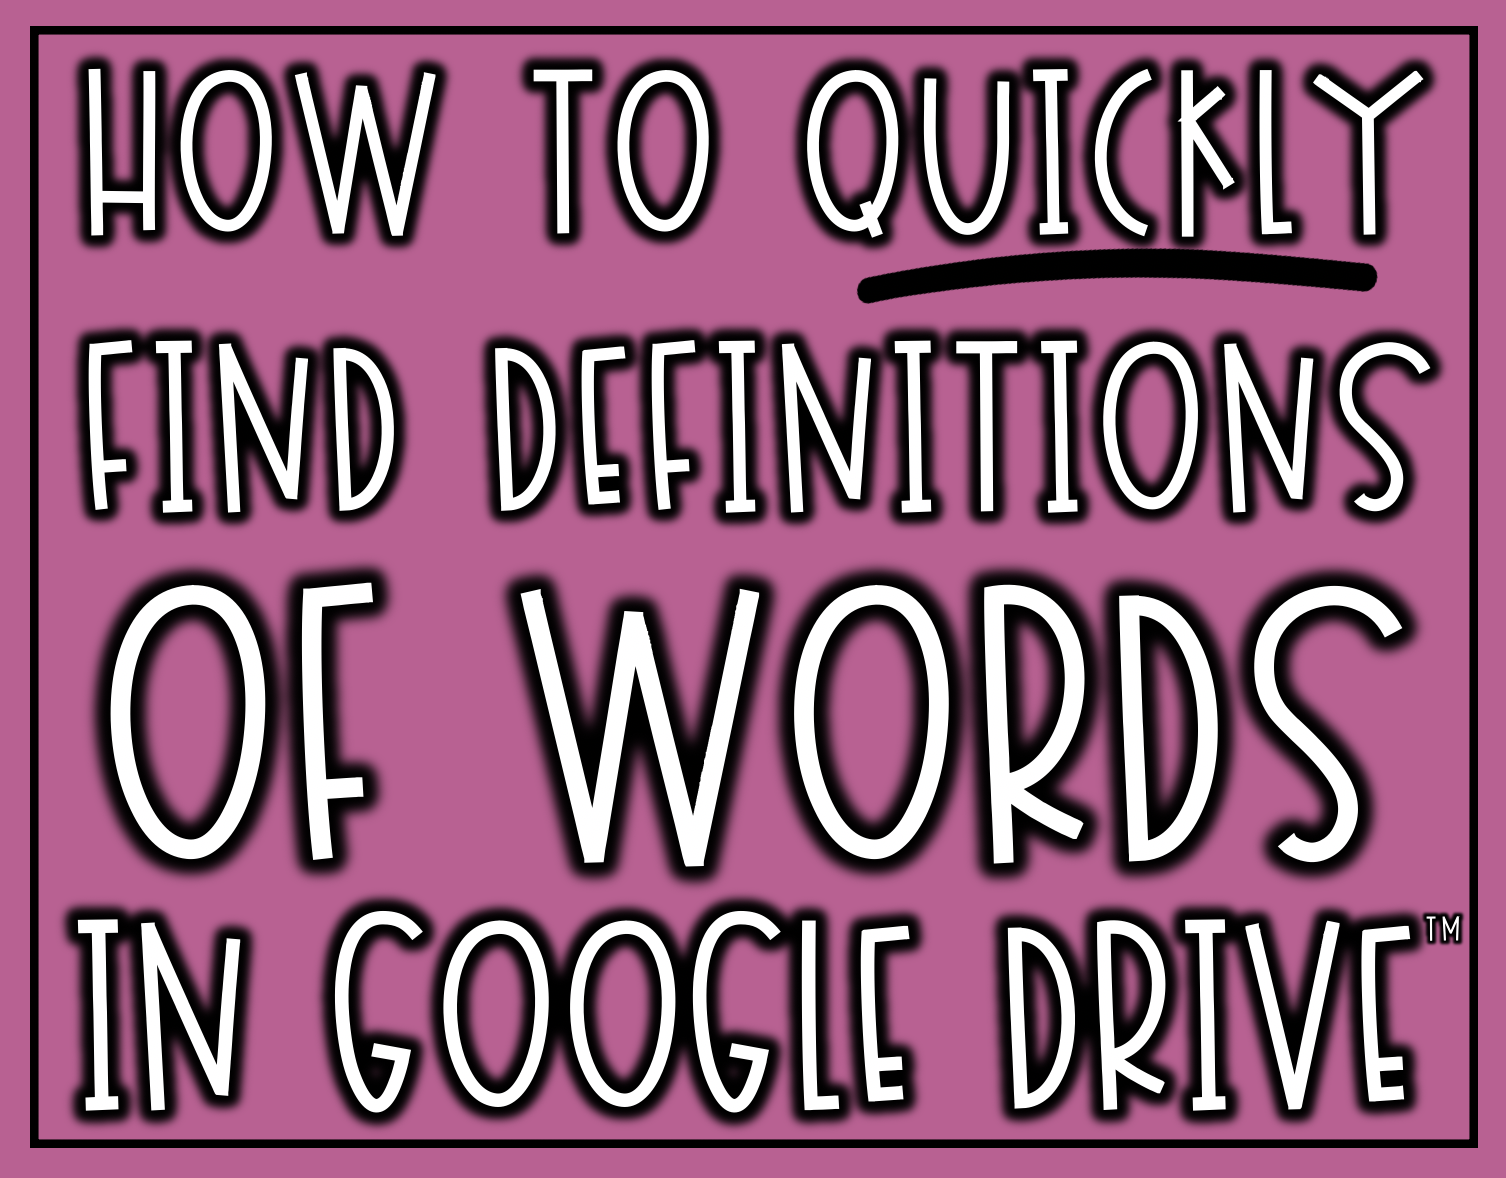 How to quickly find definitions of words in Google Drive using the built in dictionary. Simply highlight your word>go to Tools> go to Dictionary.